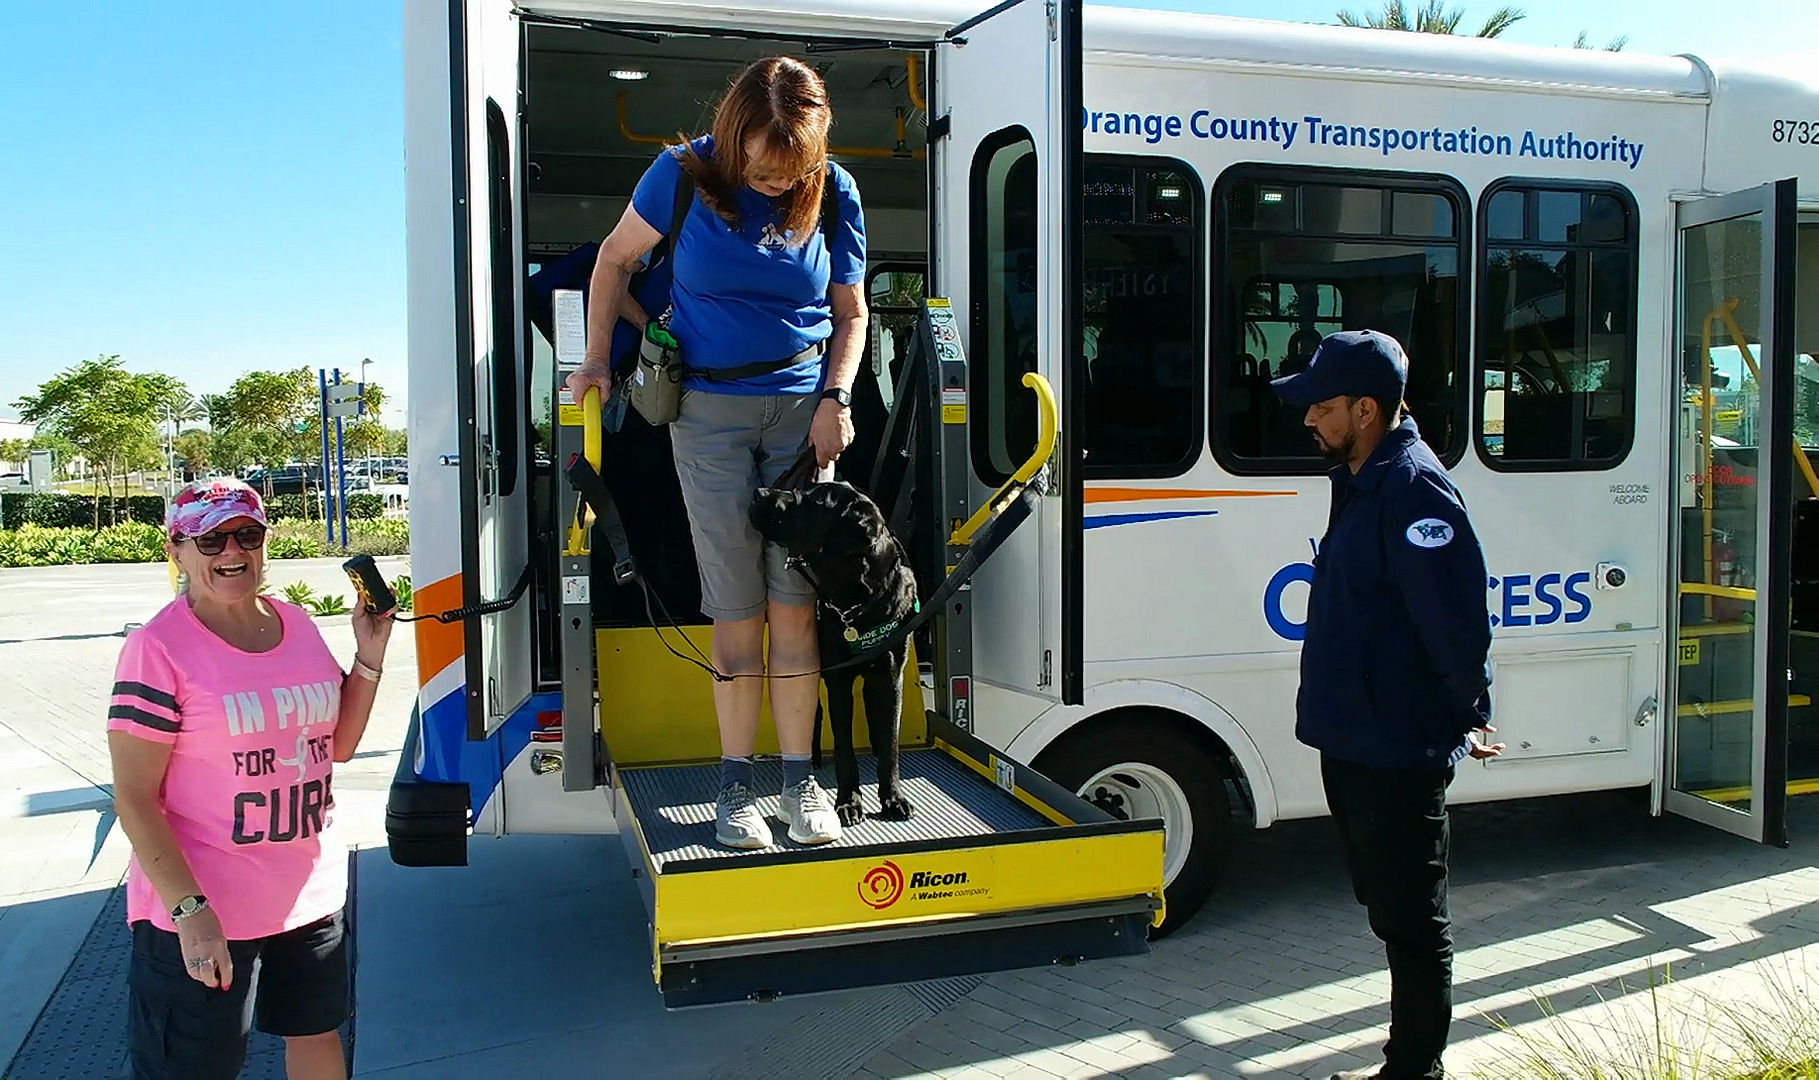 Brenda with Dash on bus lift